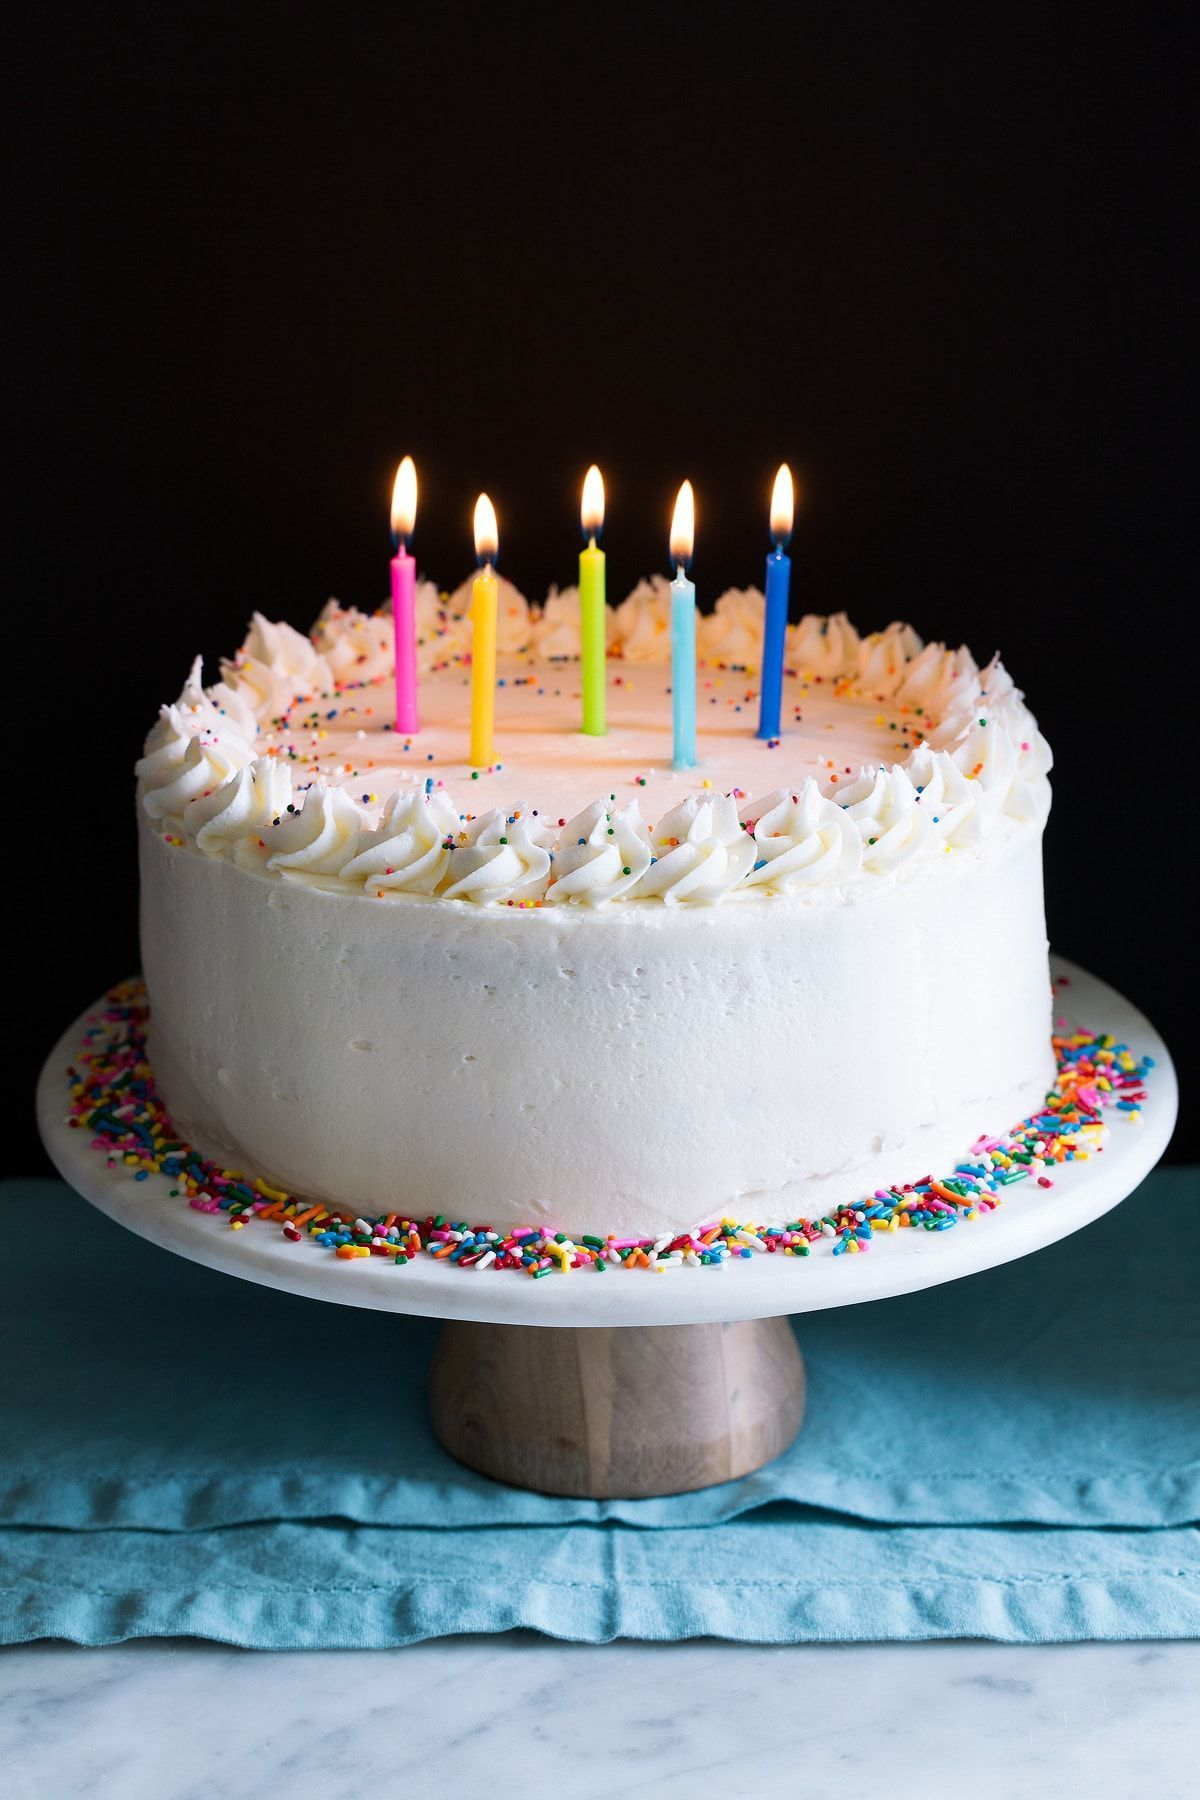 Whole birthday cake on a cake stand garnished with sprinkles and topped with lit birthday candles.